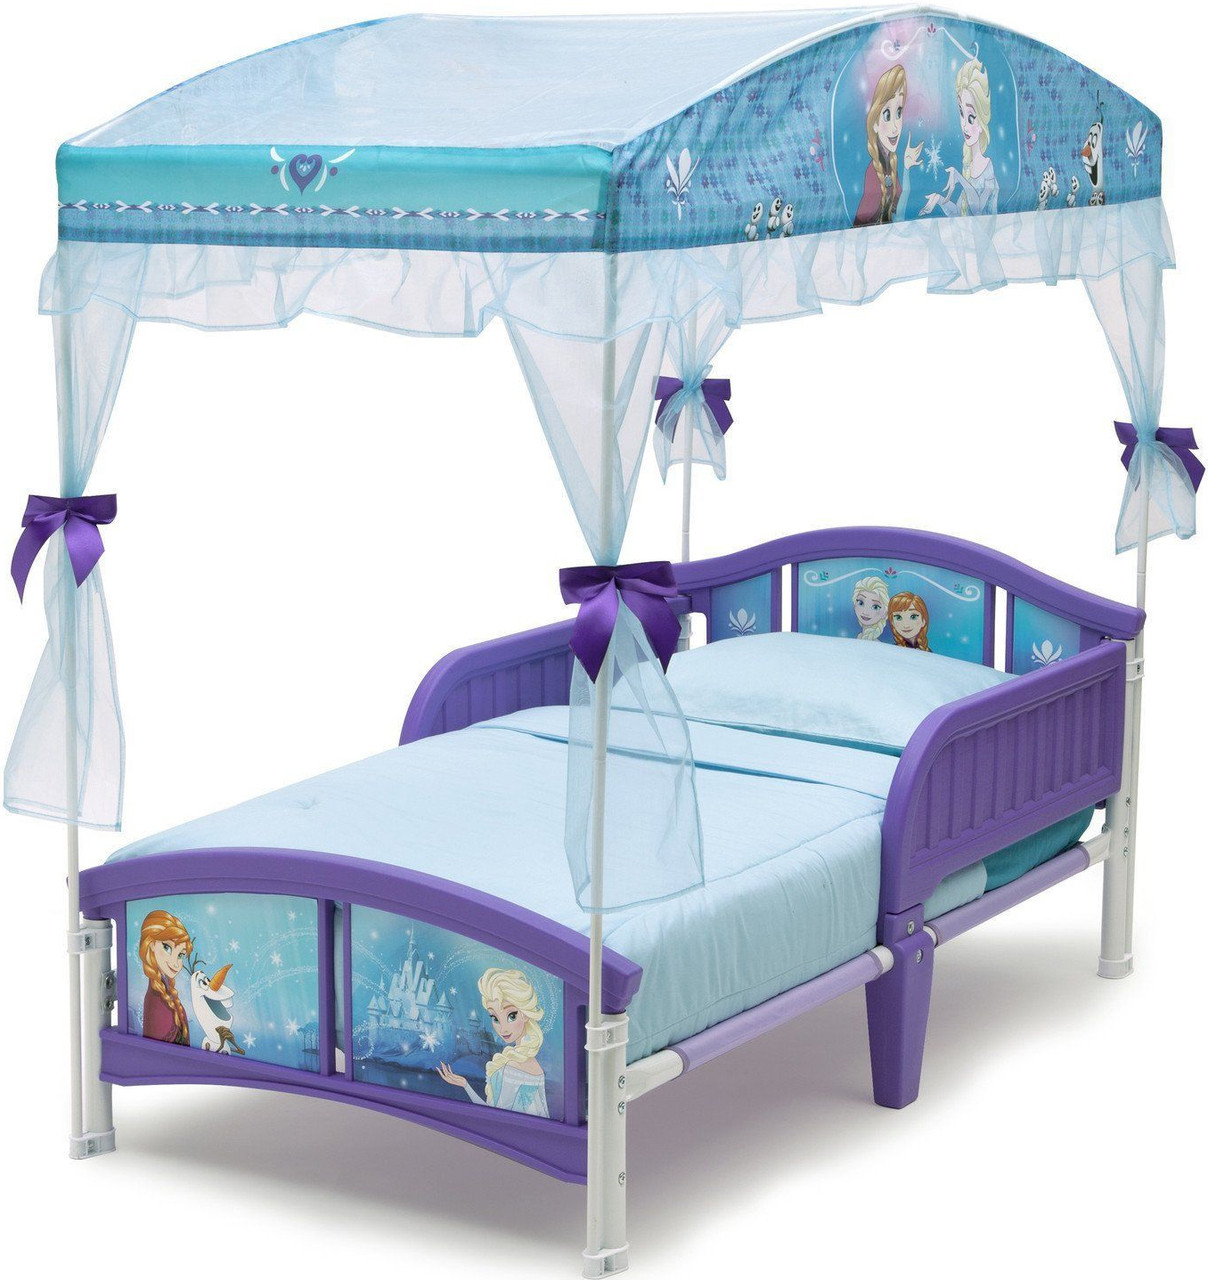 Frozen Canopy Toddler Bed ...  sc 1 st  CB Furniture & Frozen Canopy Toddler Bed - CB Furniture